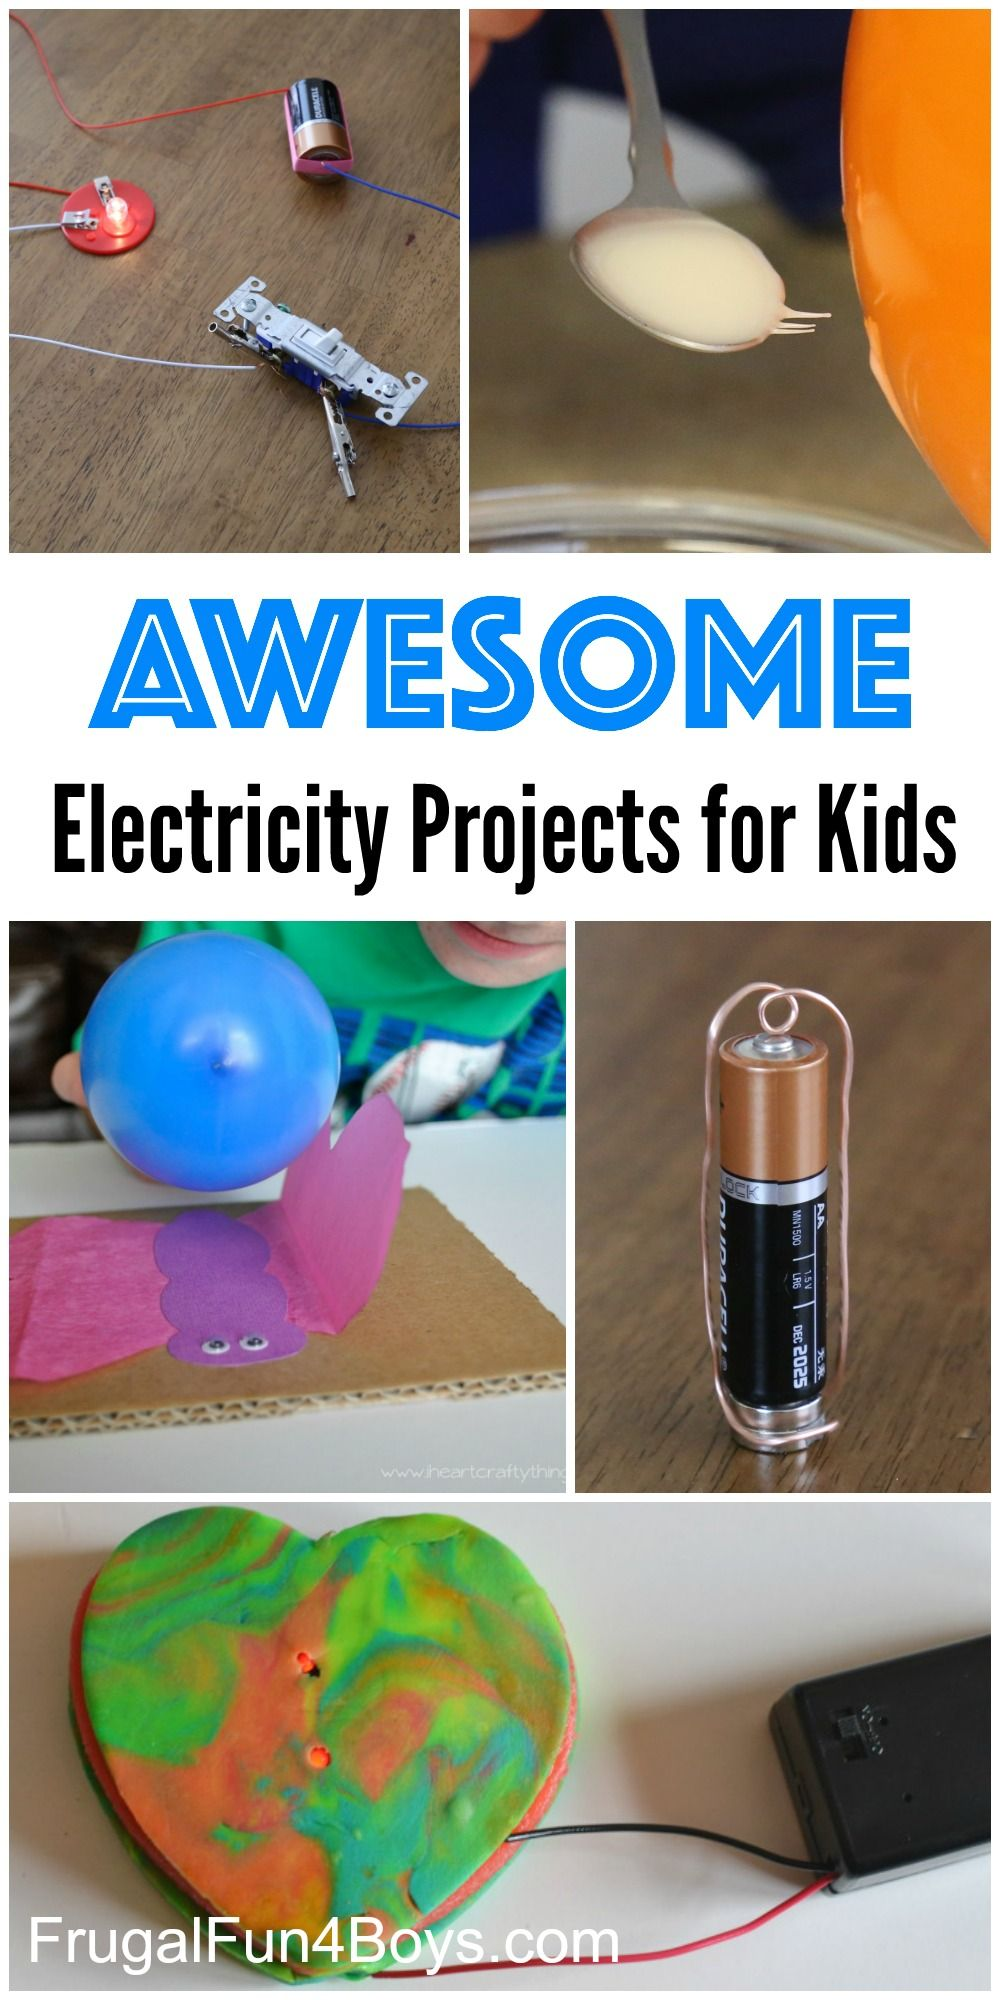 10 awesome electricity projects for kids simple static electricity demonstrations build a circuit show how a switch works electromagnetism and more  [ 1000 x 2000 Pixel ]